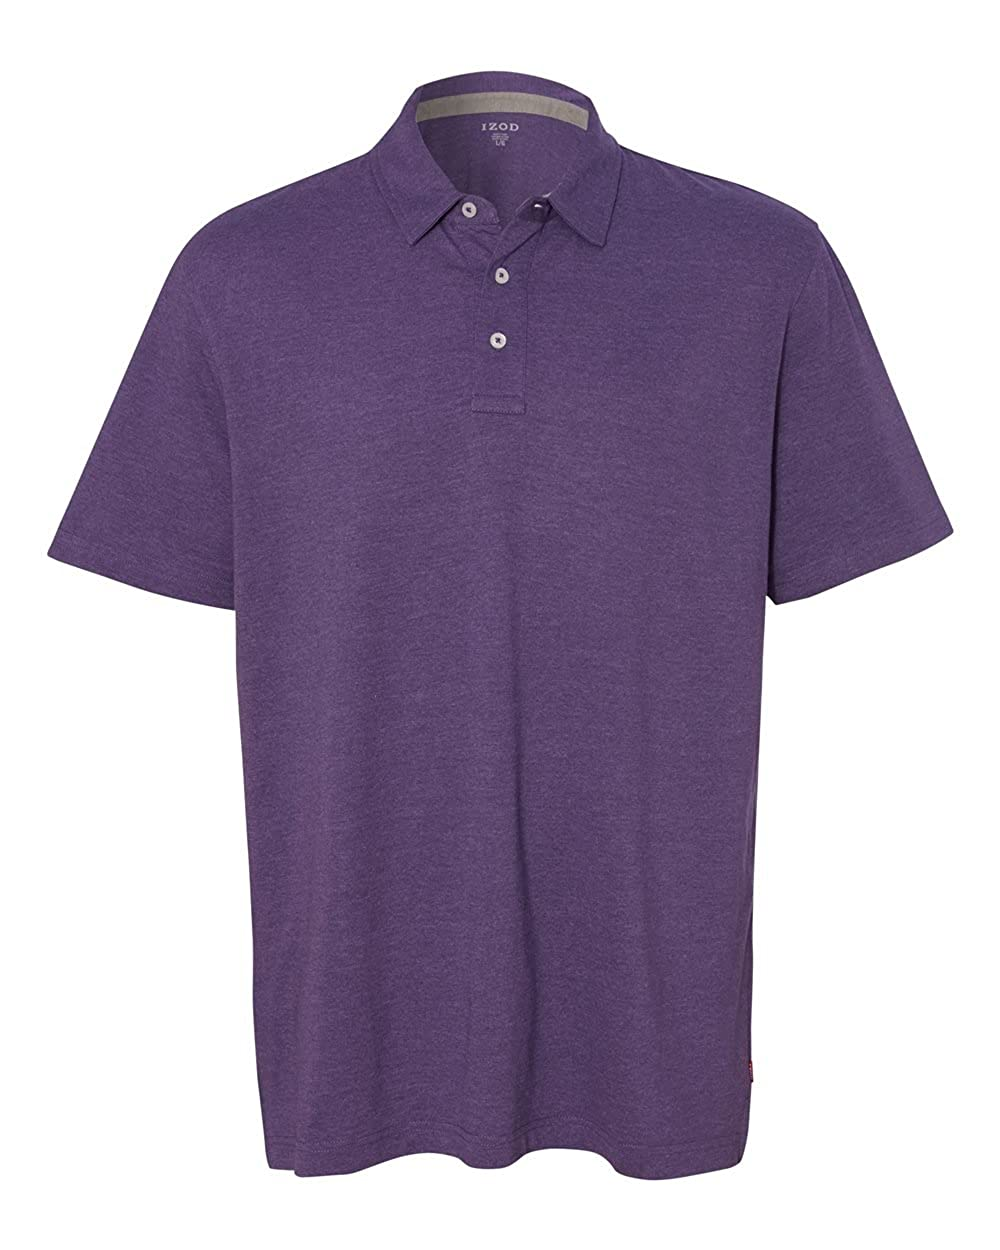 1f9d087ea22 Amazon.com  IZOD Men s Original Silk-Wash Pique Sport Shirt (99299)  Available  Clothing